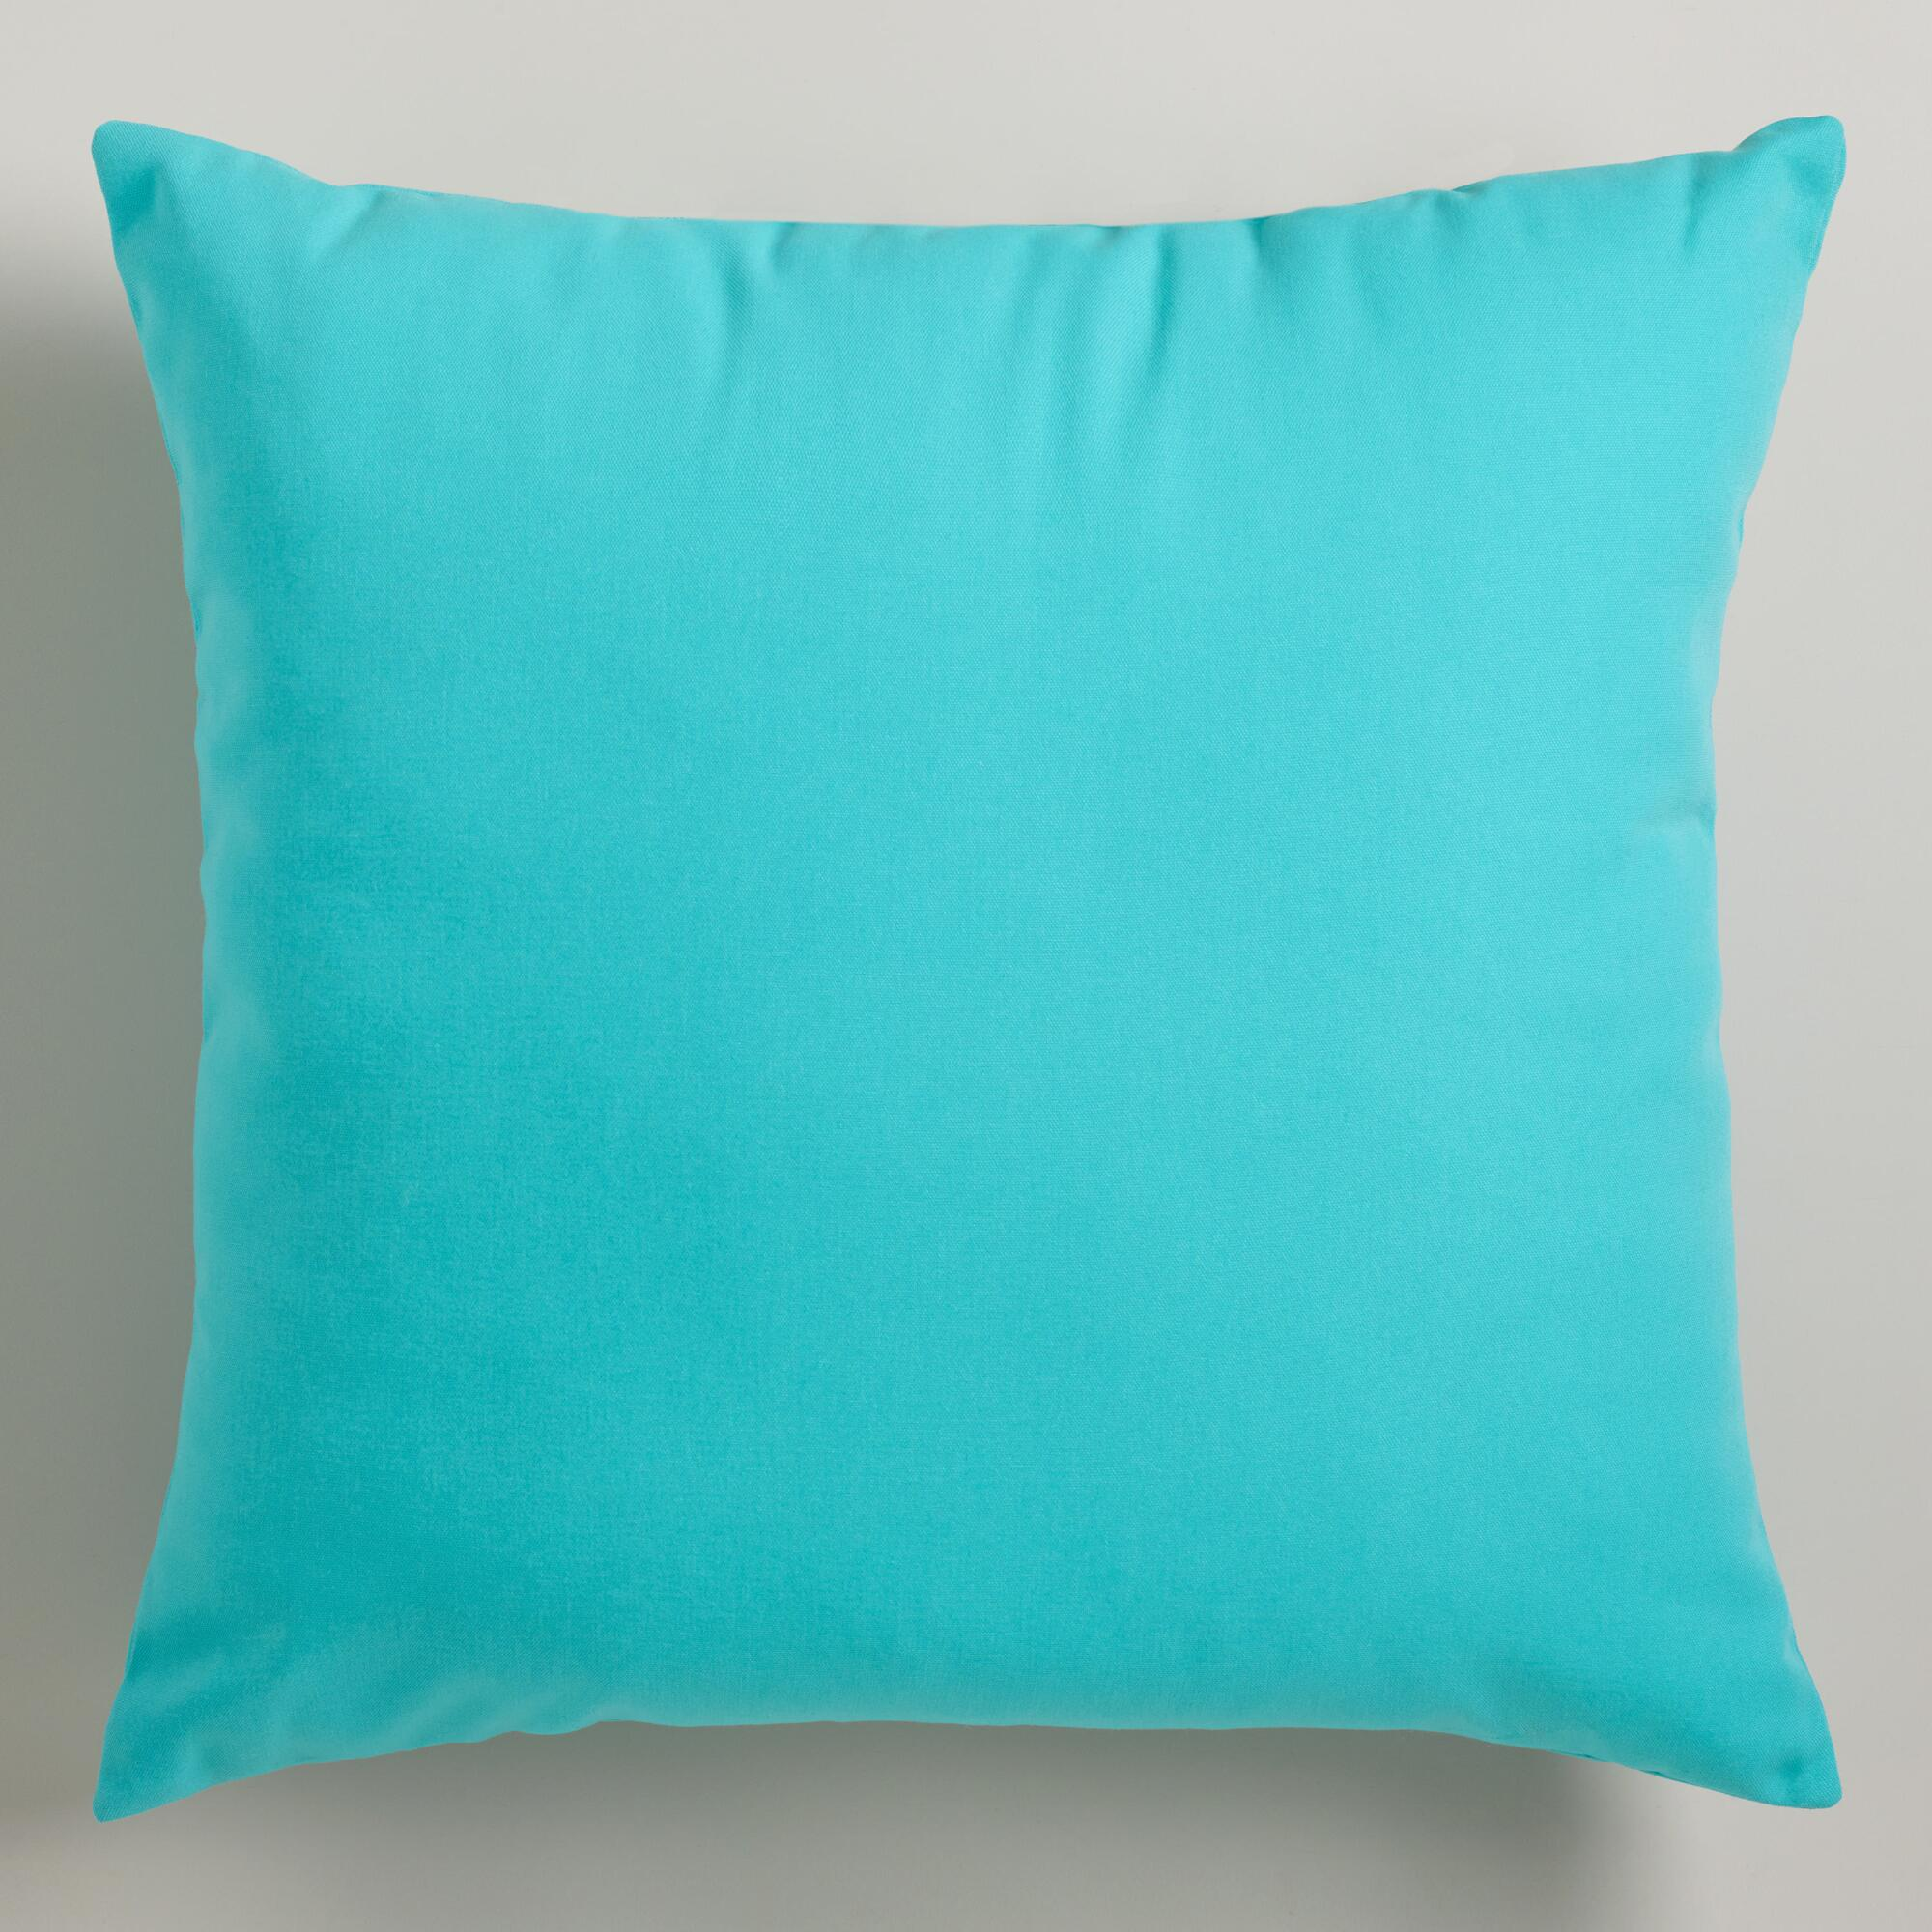 Throw Pillows Aqua Blue : 301 Moved Permanently